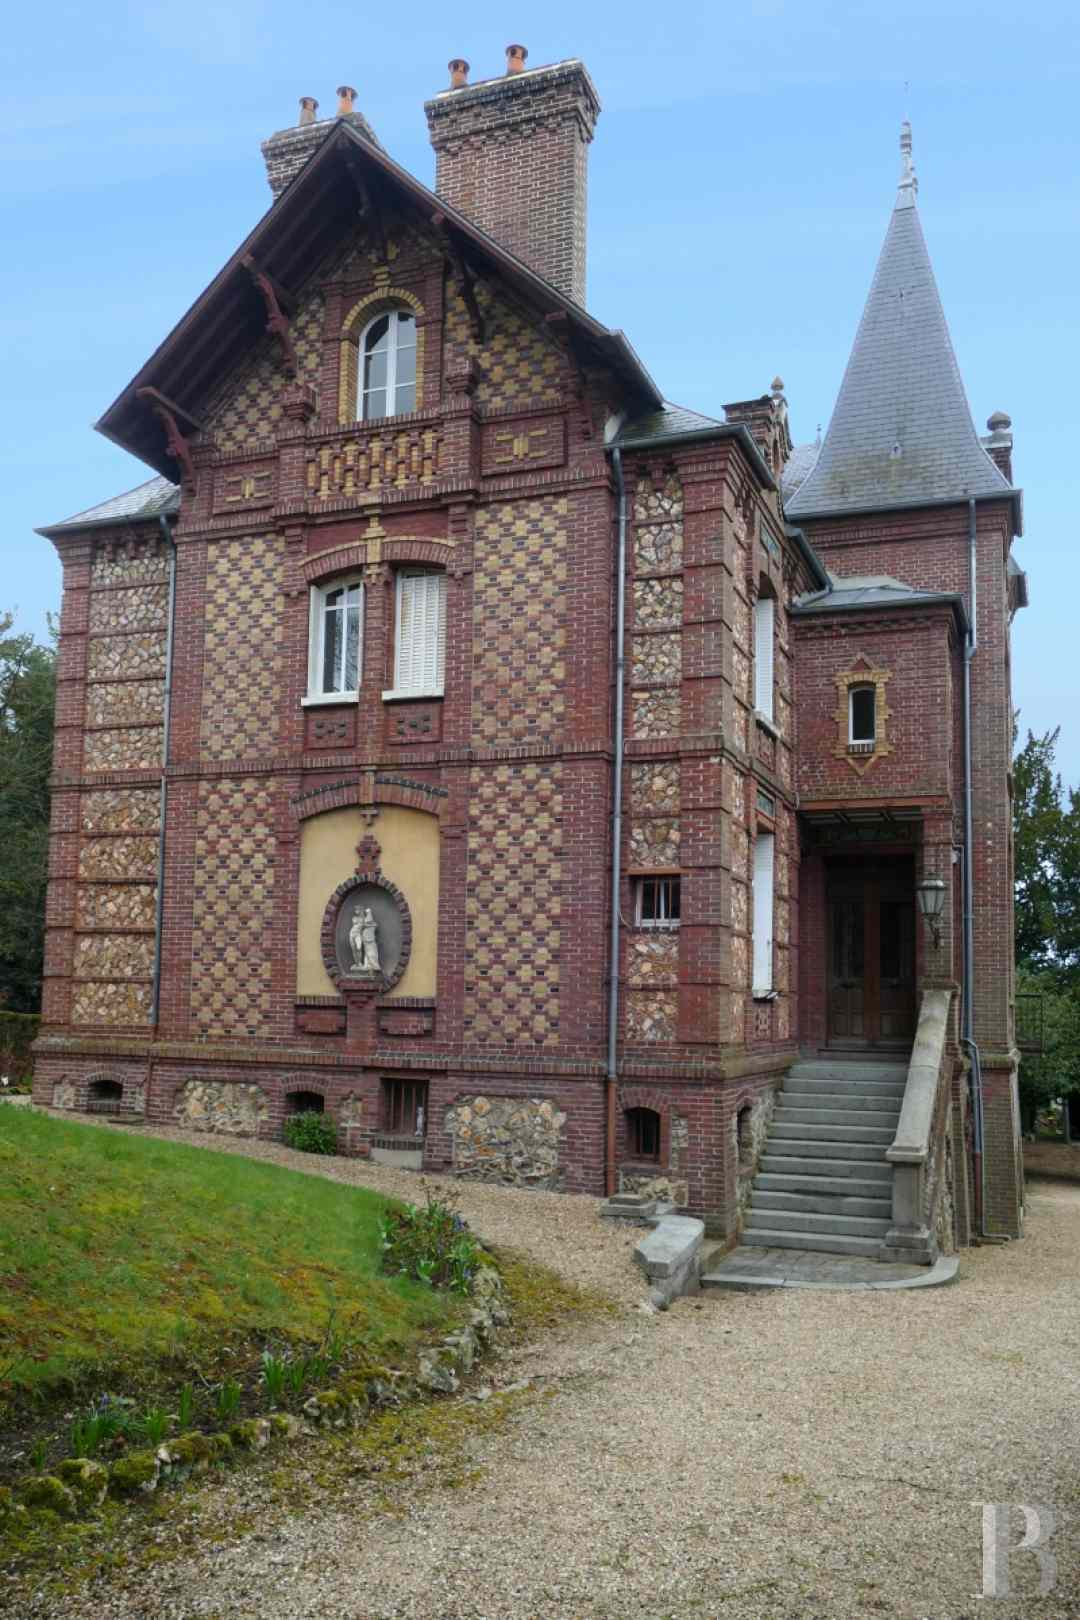 property for sale France upper normandy residences for - 3 zoom